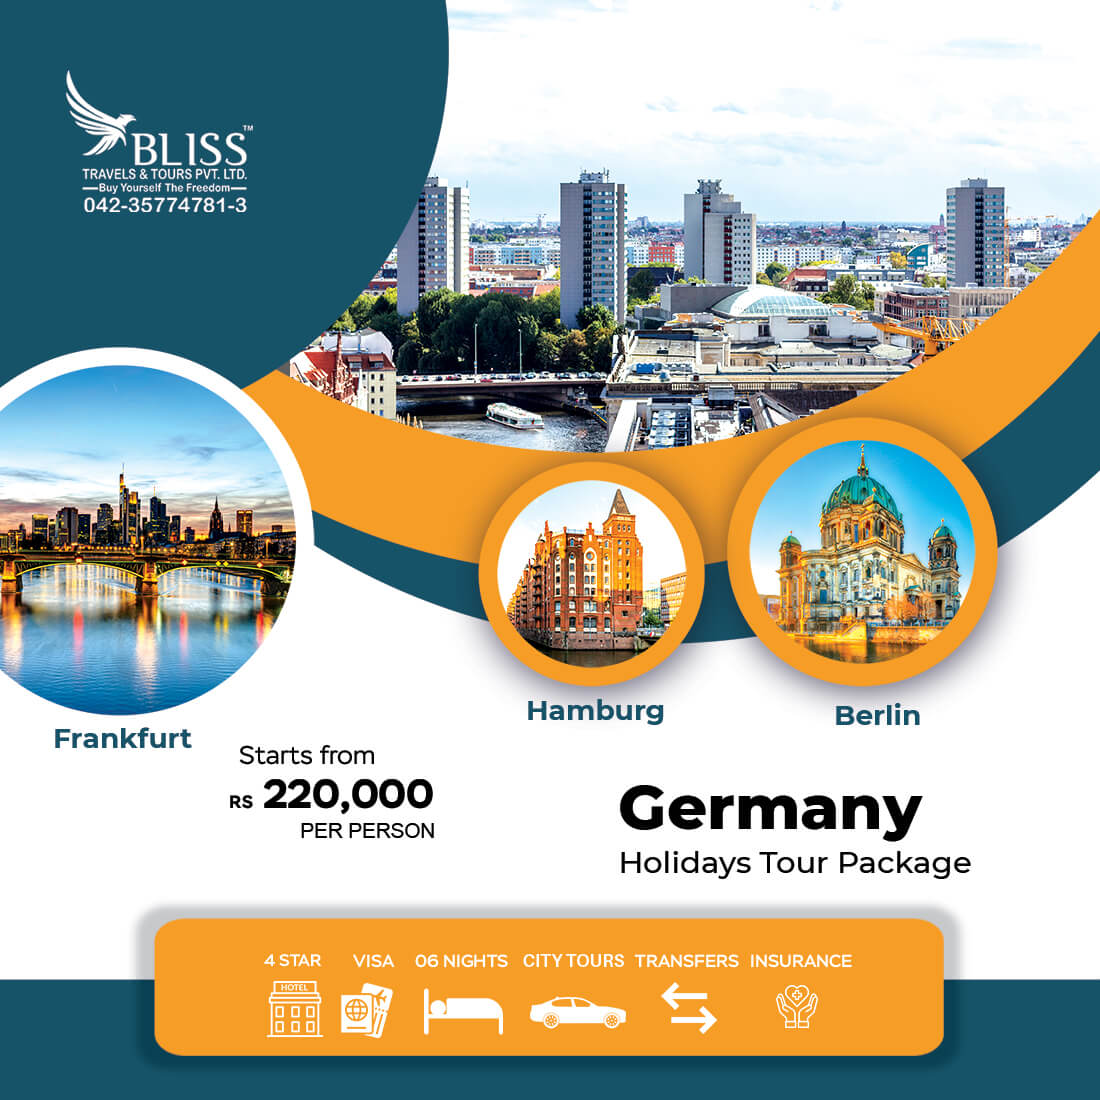 Germany-Holidays-Tour-Package